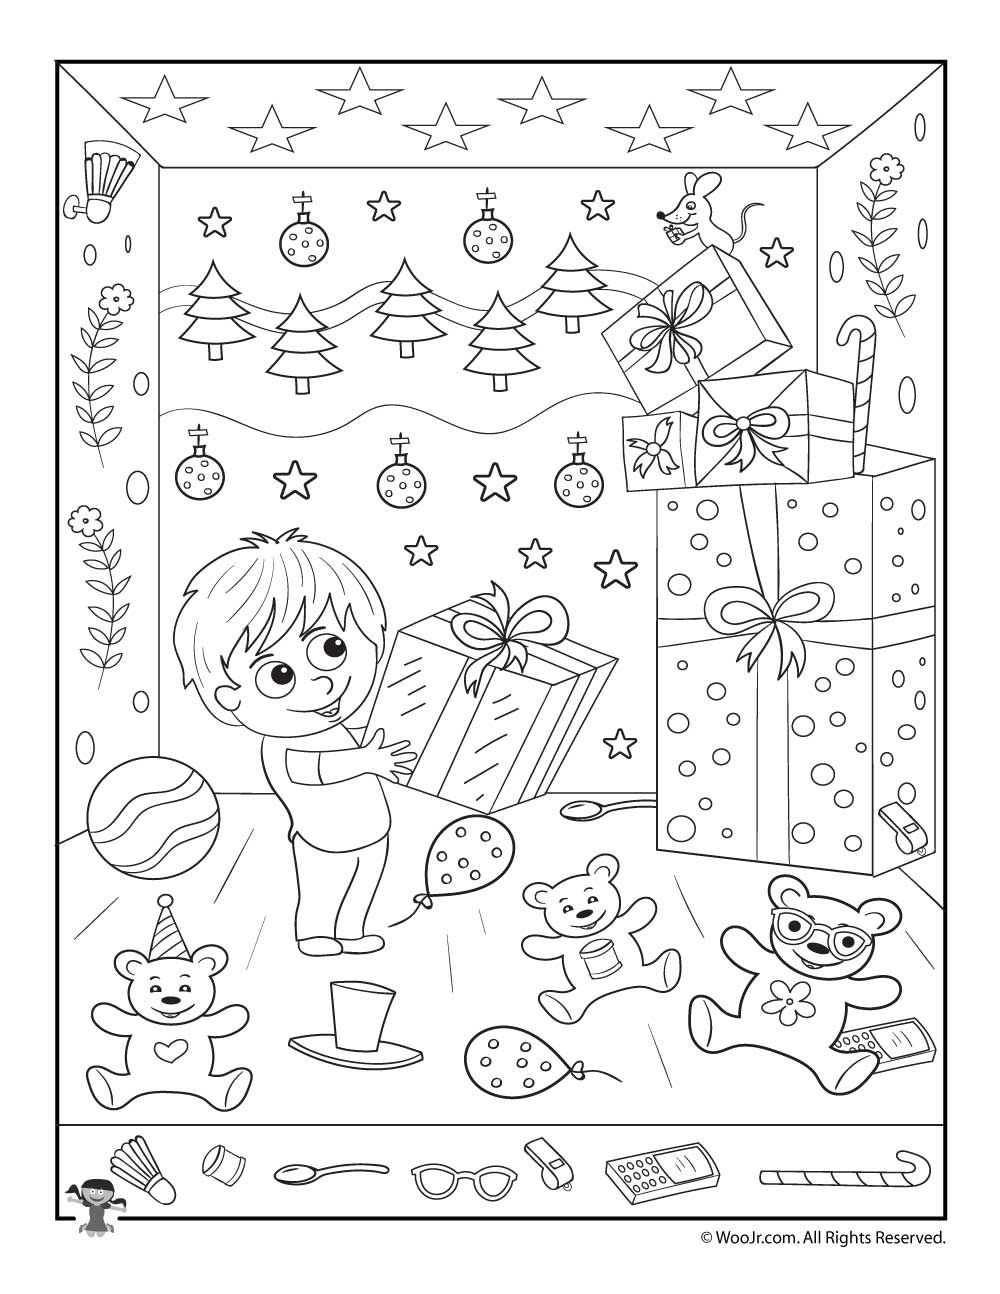 Christmas Hidden Picture Puzzles Printable Christmas Gifts Hidden Picture Printable Activity